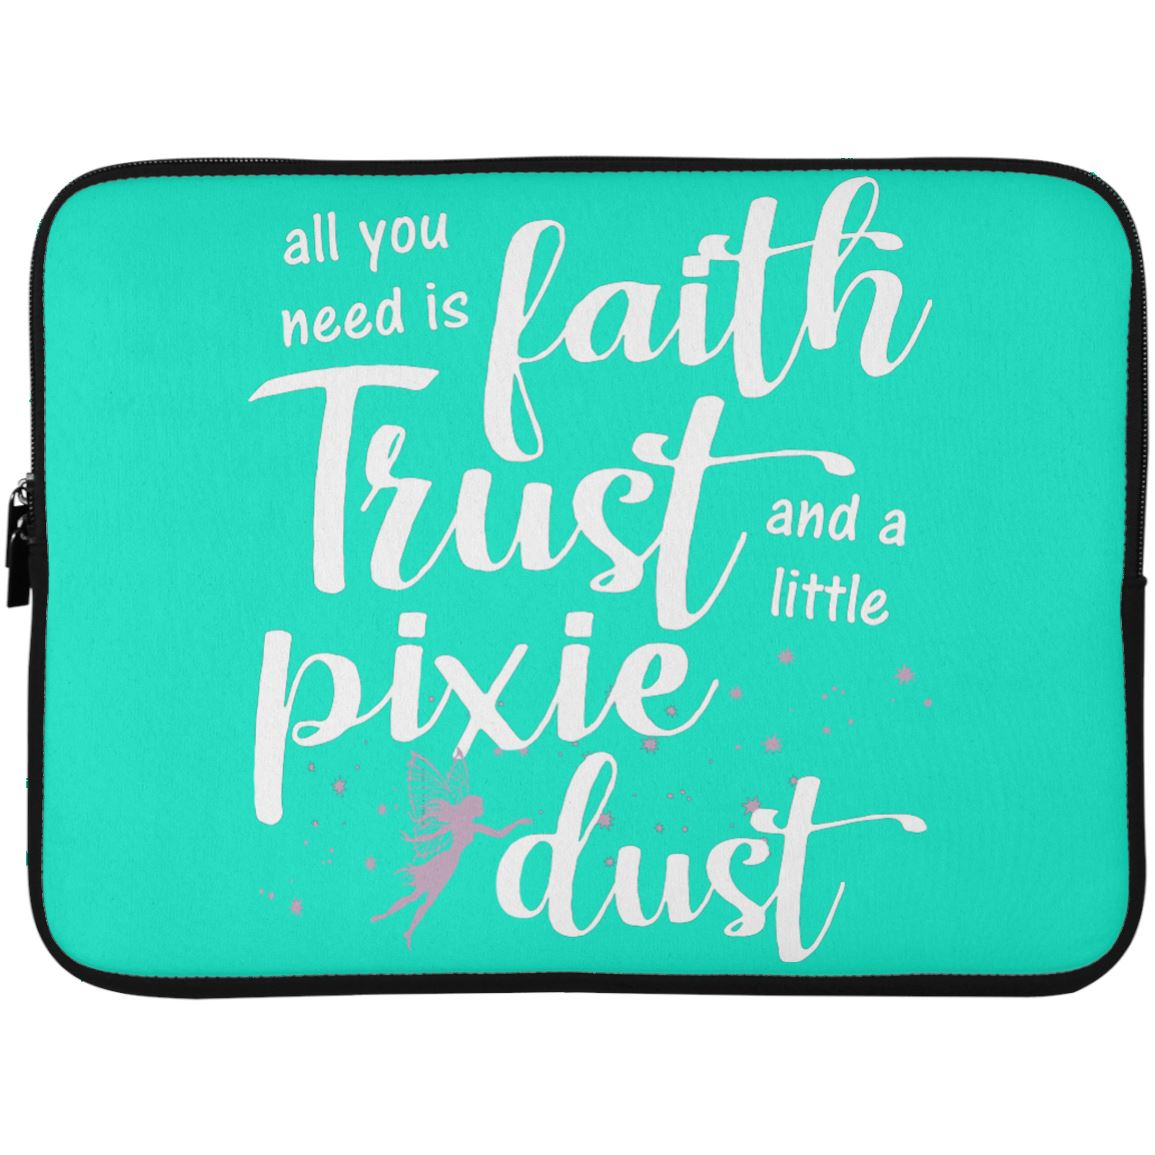 Pixie Dust Fairy Laptop Sleeve Apparel Laptop Sleeve - 15 Inch Teal One Size